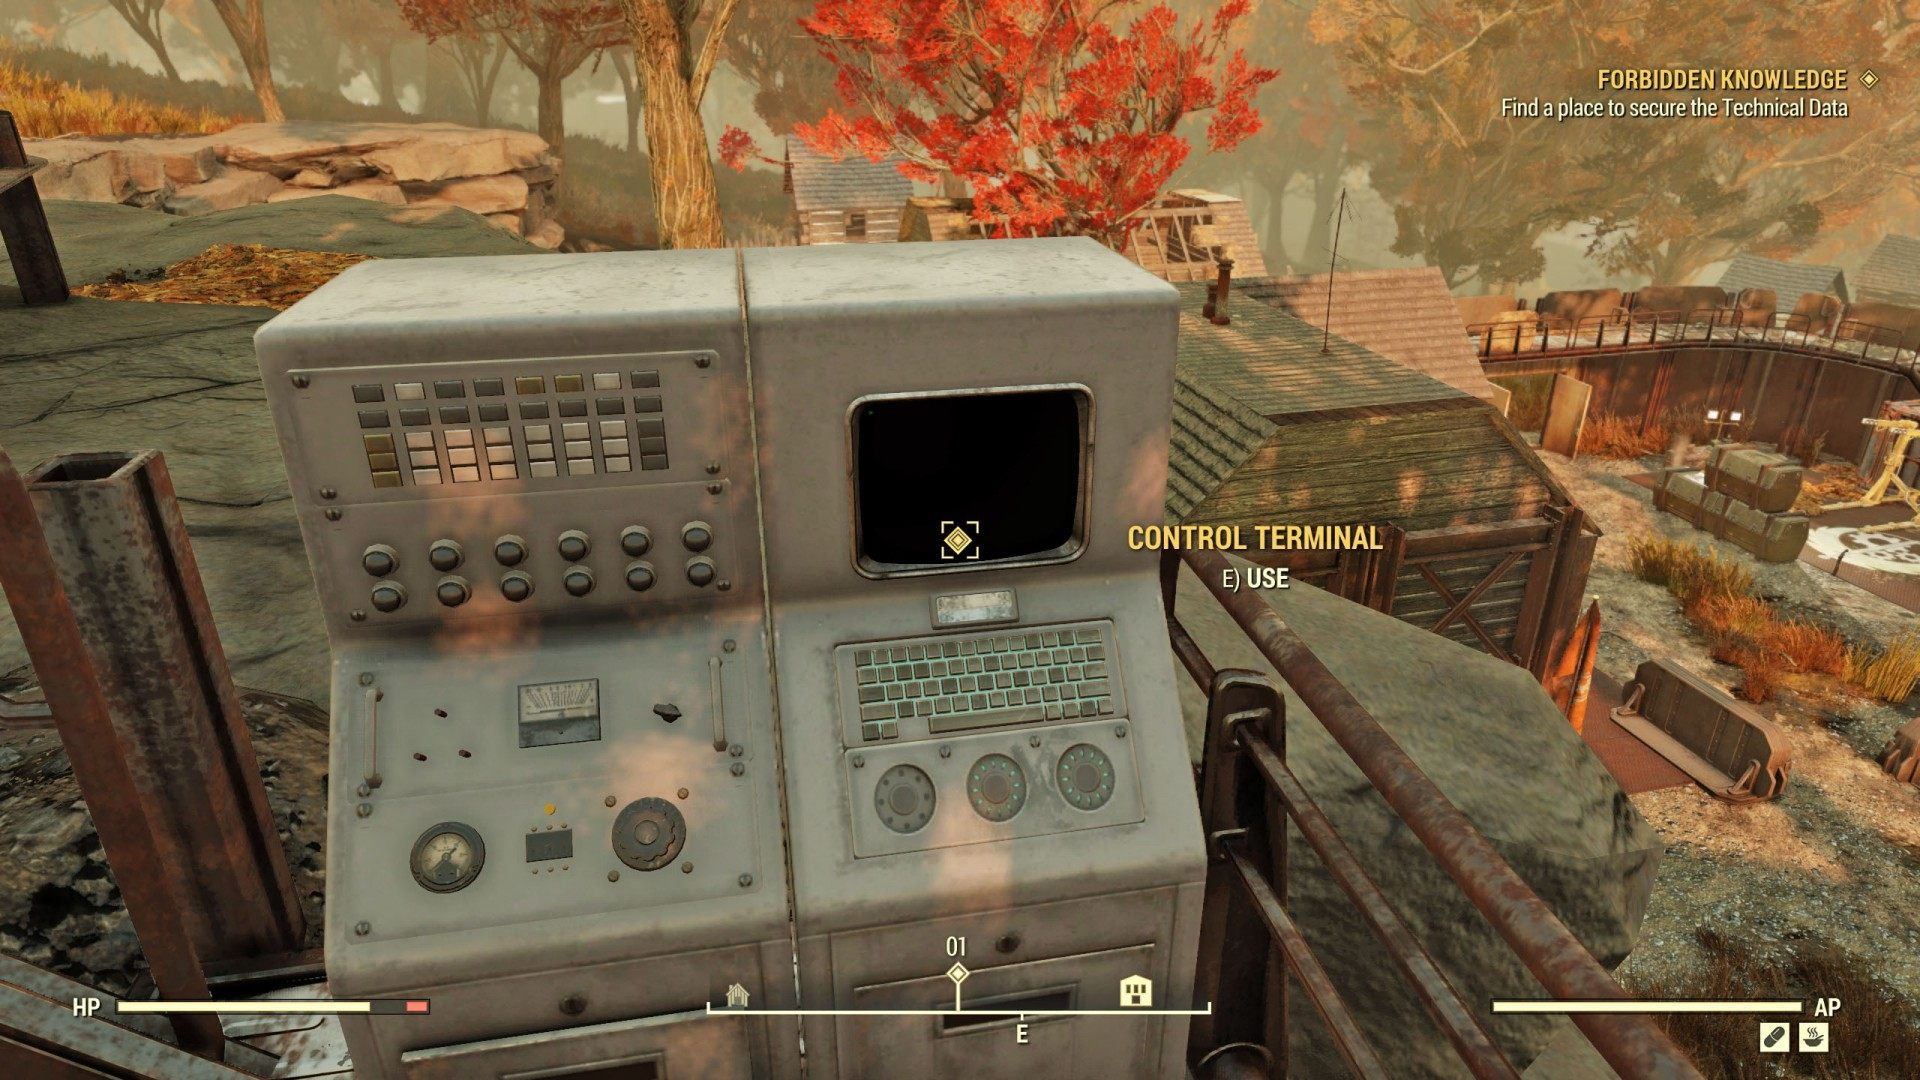 Forbidden Knowledge, Fallout 76 Quest